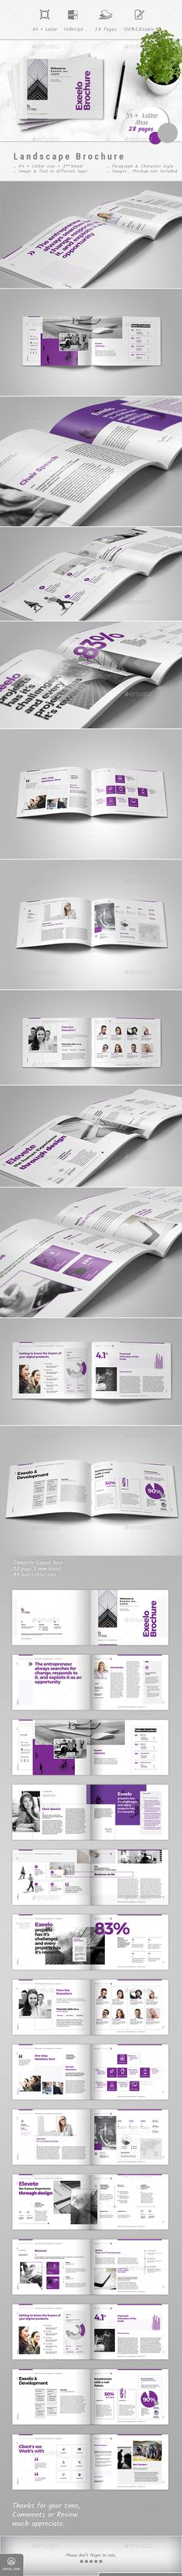 Brochure Template InDesign INDD - 28 Pages, A4 and US Letter Size